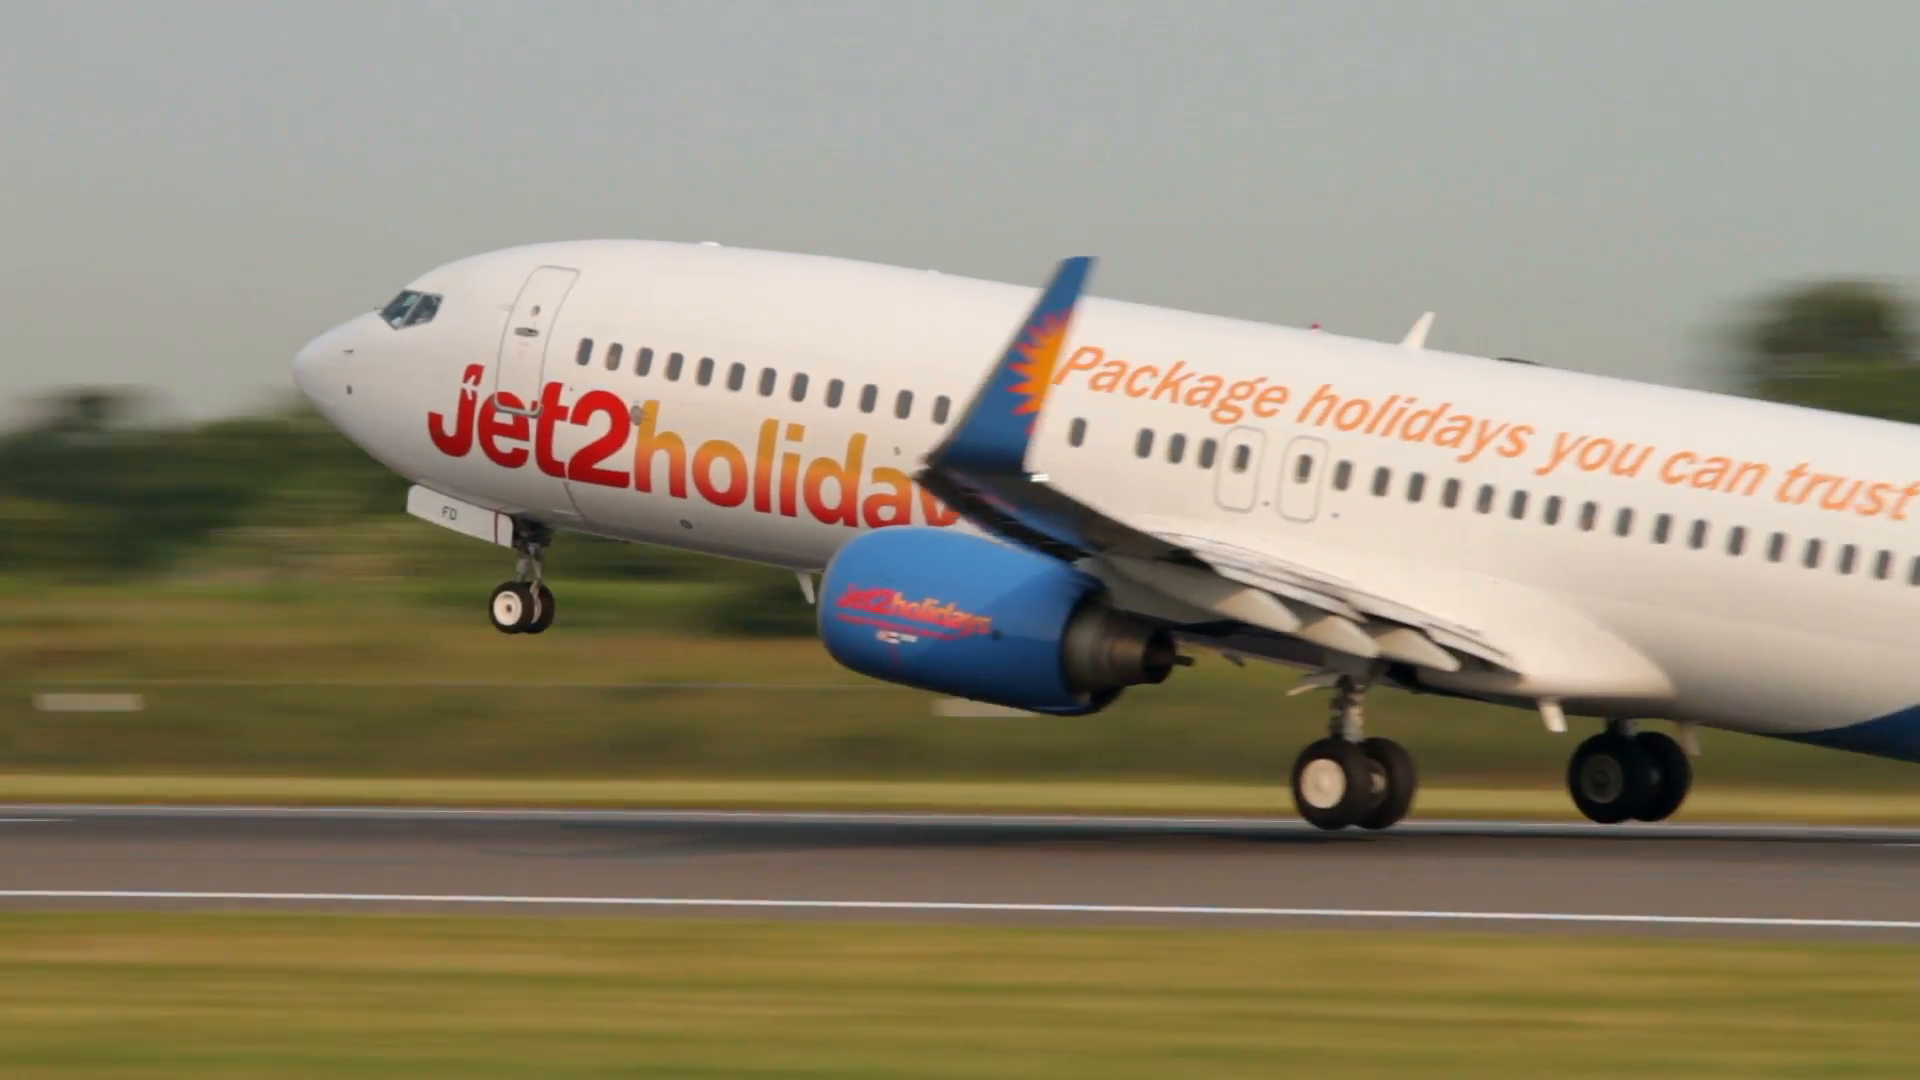 Jet2 Holidays Boeing 737 Taking Off From Manchester - Jet2 1920 X 1080 , HD Wallpaper & Backgrounds